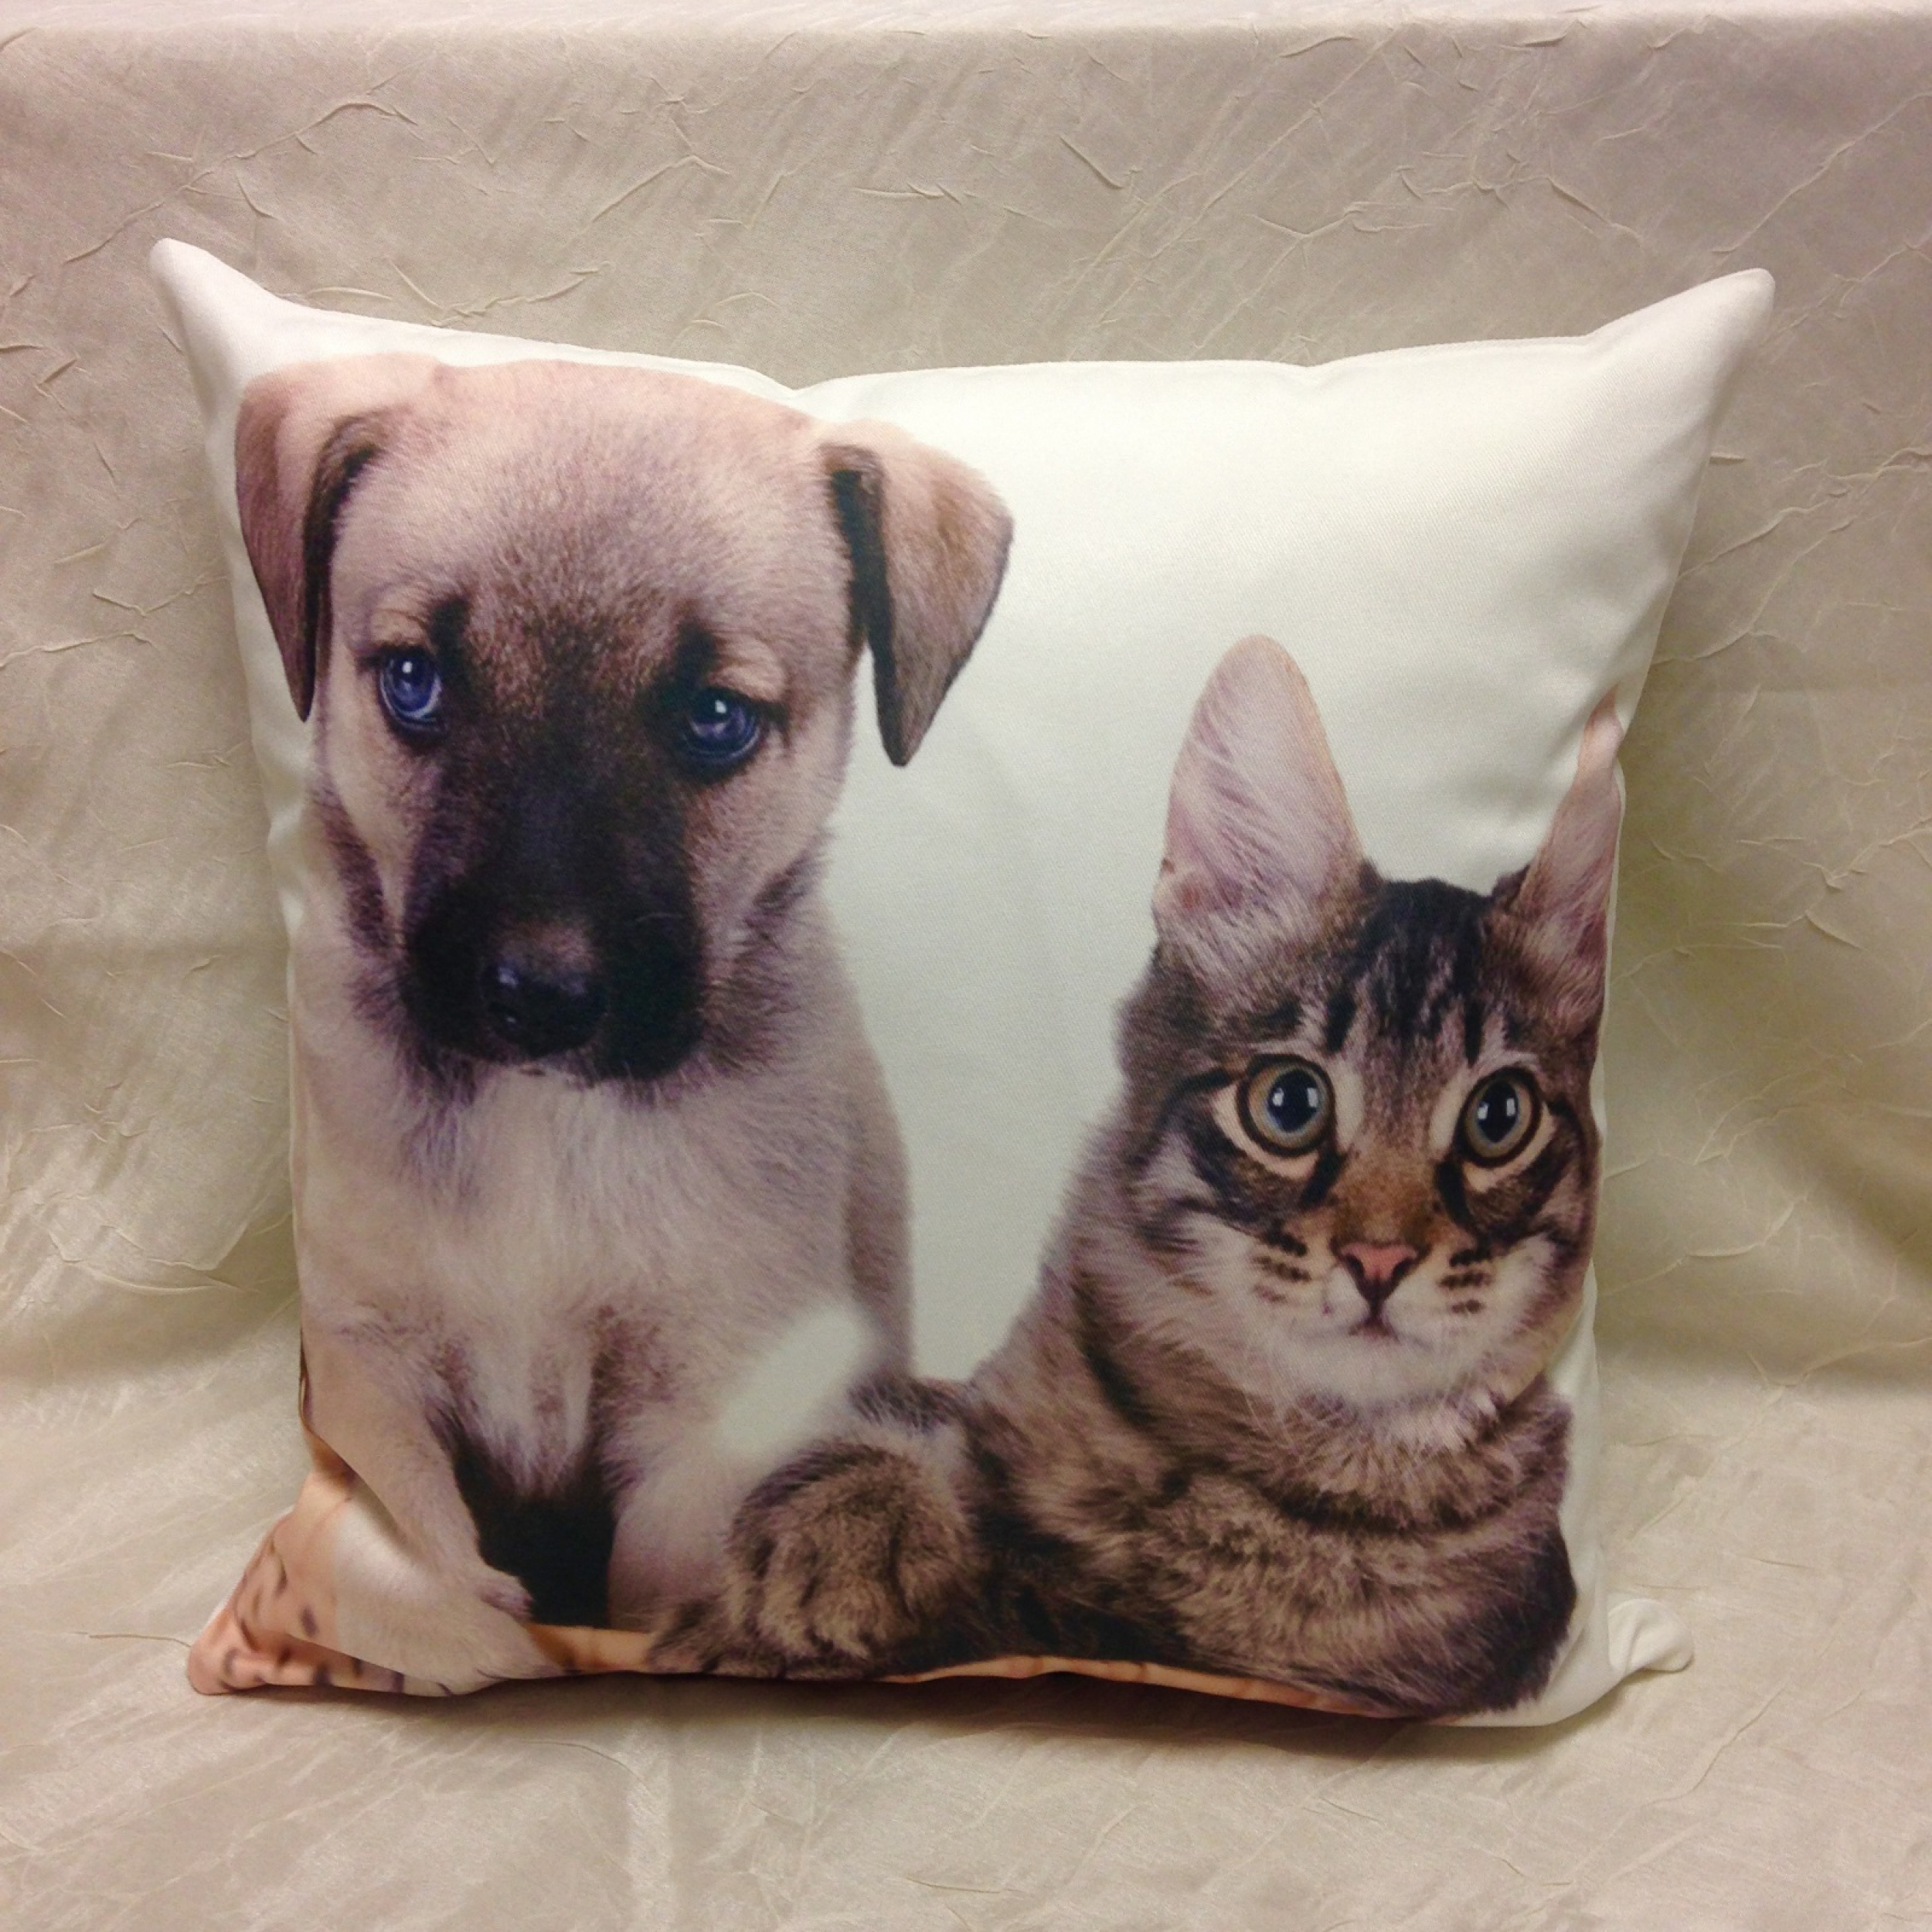 housse de coussin chien et chat 40 x 40 cm l 39 atelier de la toile. Black Bedroom Furniture Sets. Home Design Ideas